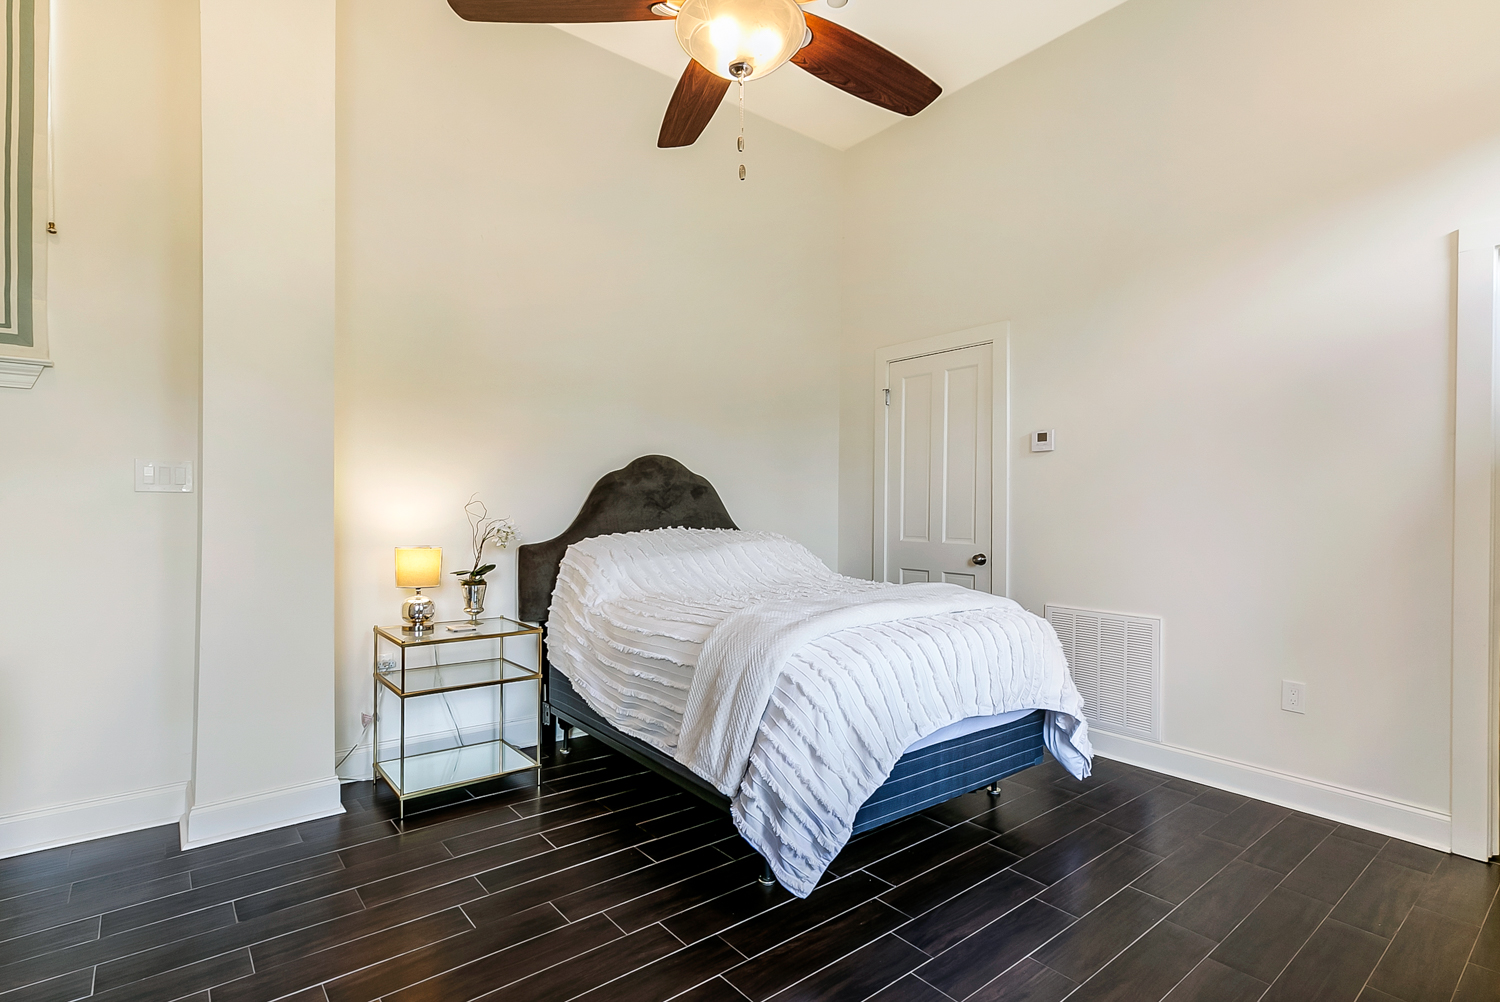 Garden District, Apartment, 1 beds, 1.0 baths, $2800 per month New Orleans Rental - devie image_9